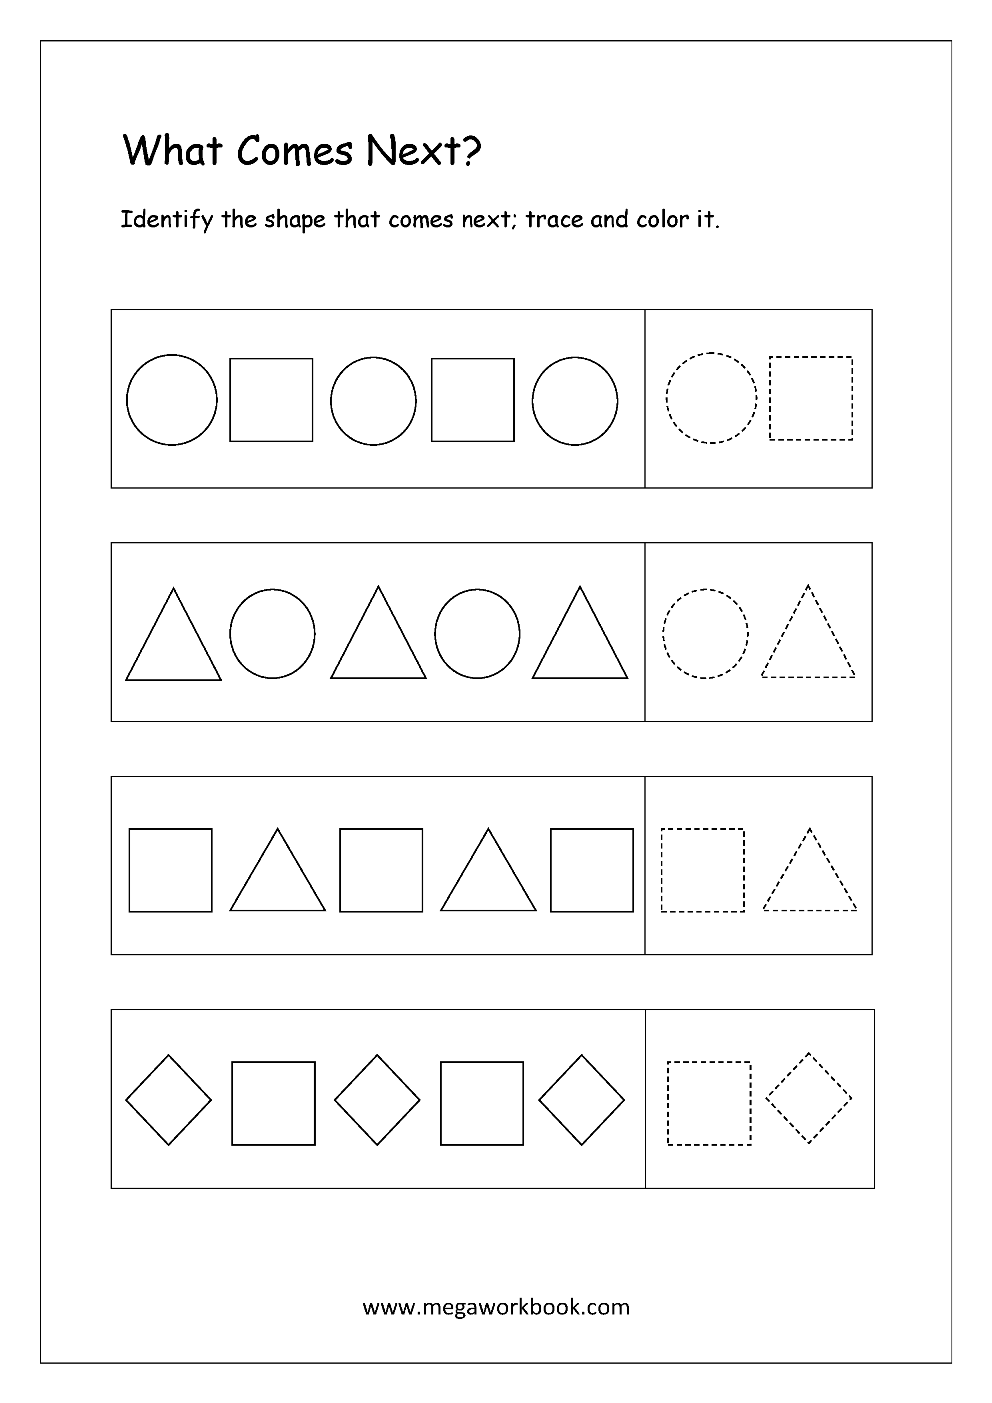 Worksheets Preschool Pattern Worksheets free printable shapes and pattern worksheets for preschool identification what comes next